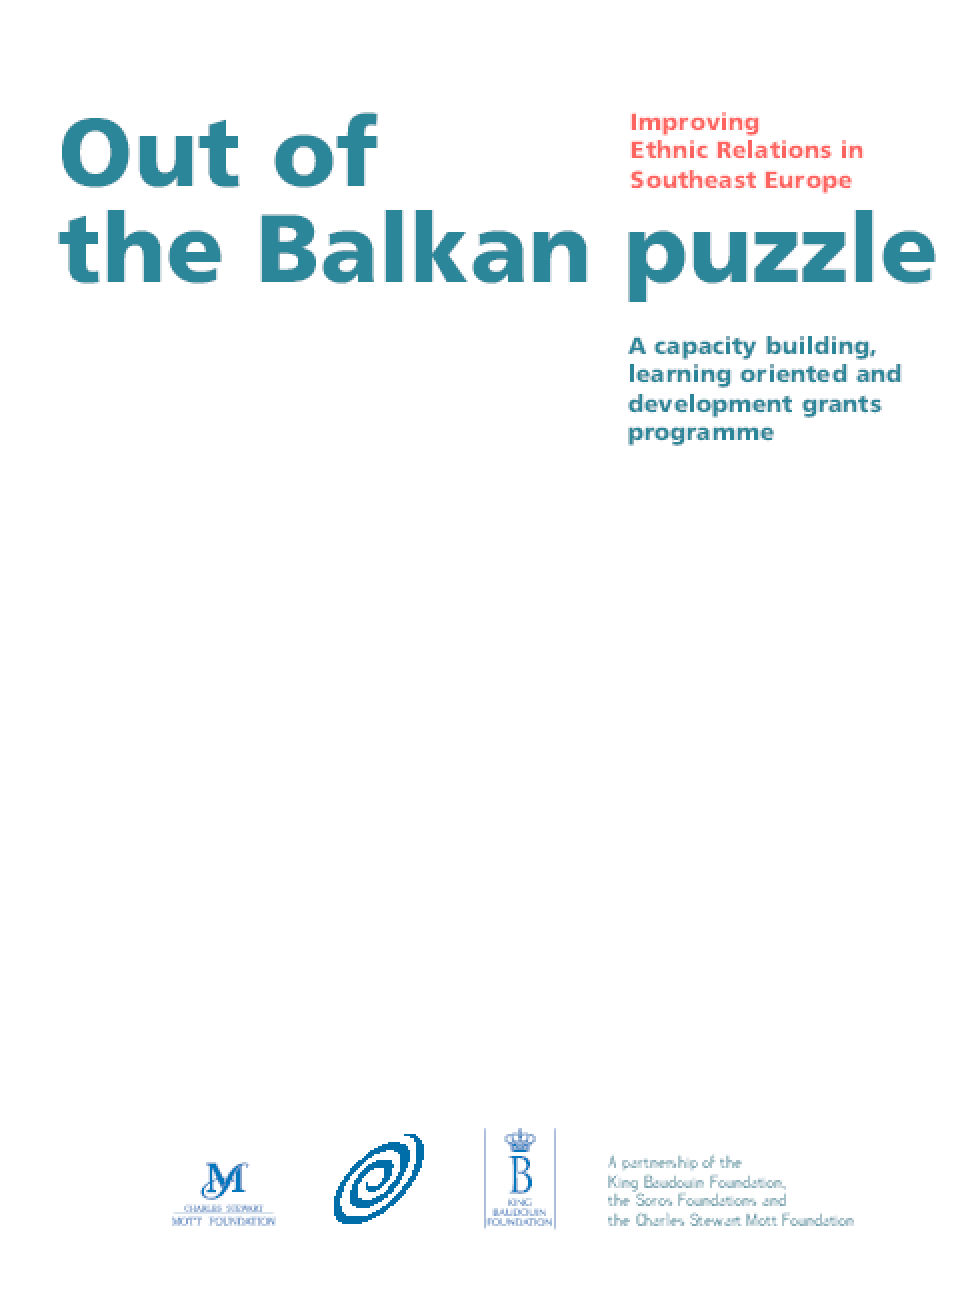 Out of the Balkan Puzzle: A Capacity Building, Learning Oriented and Development Grants Programme